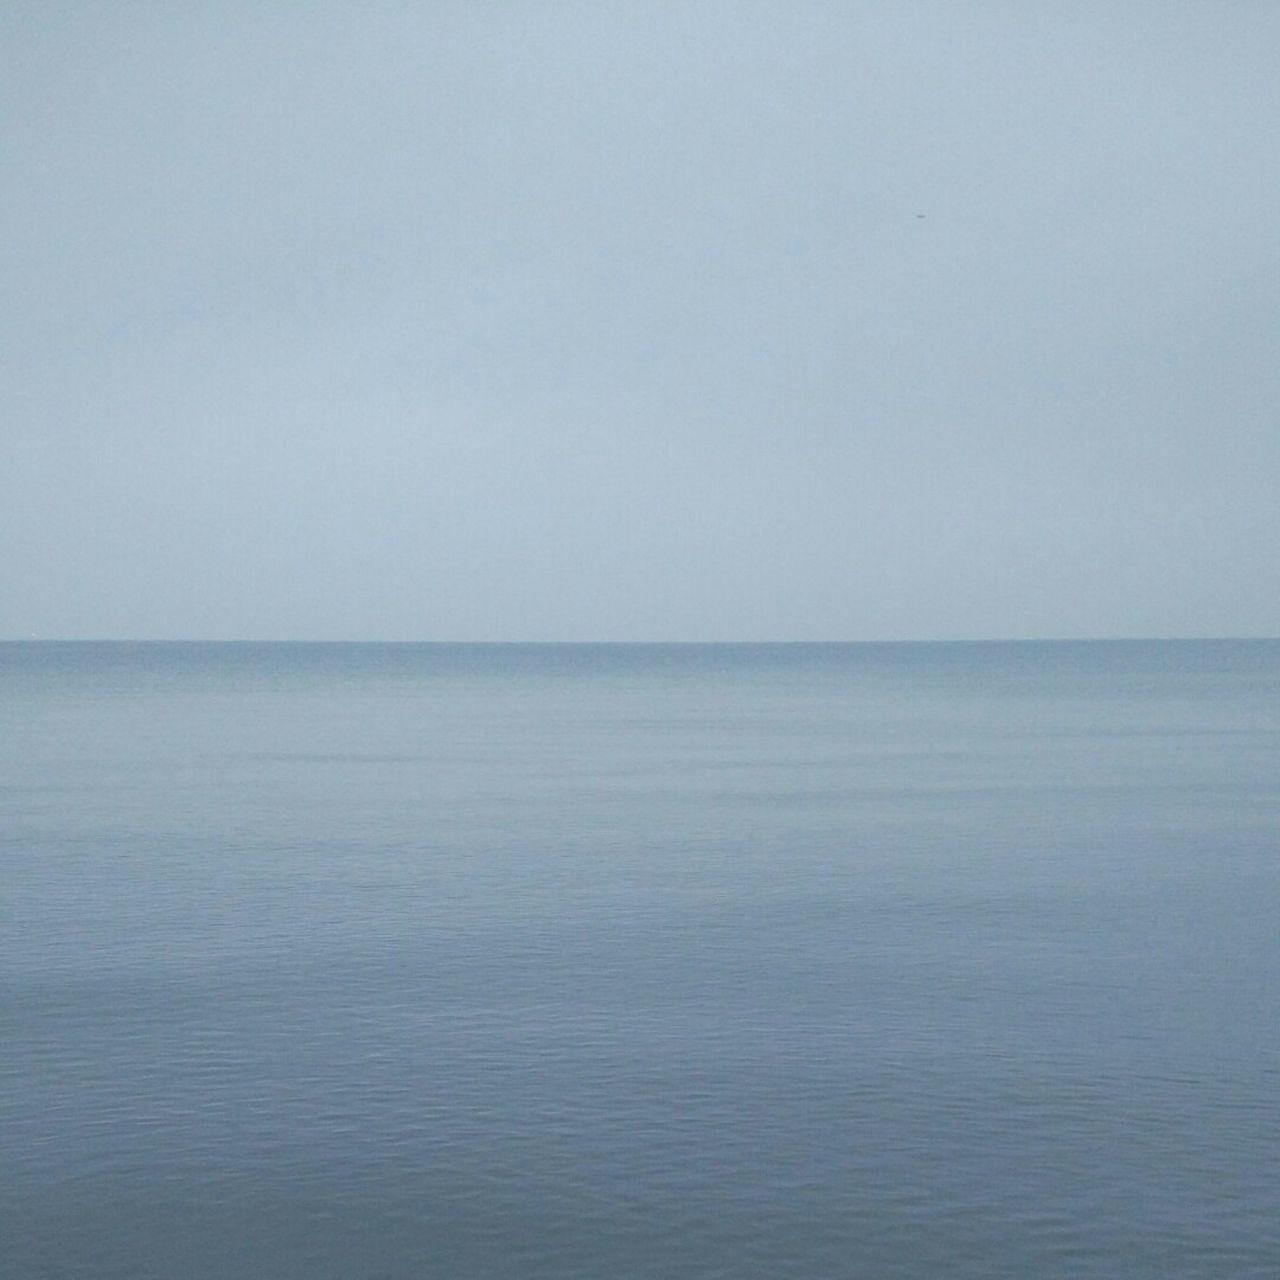 Sea Nature Backgrounds Water No People Tranquility Scenics Tranquil Scene Sky Outdoors Day Horizon Over Water Minimalism Sea Life